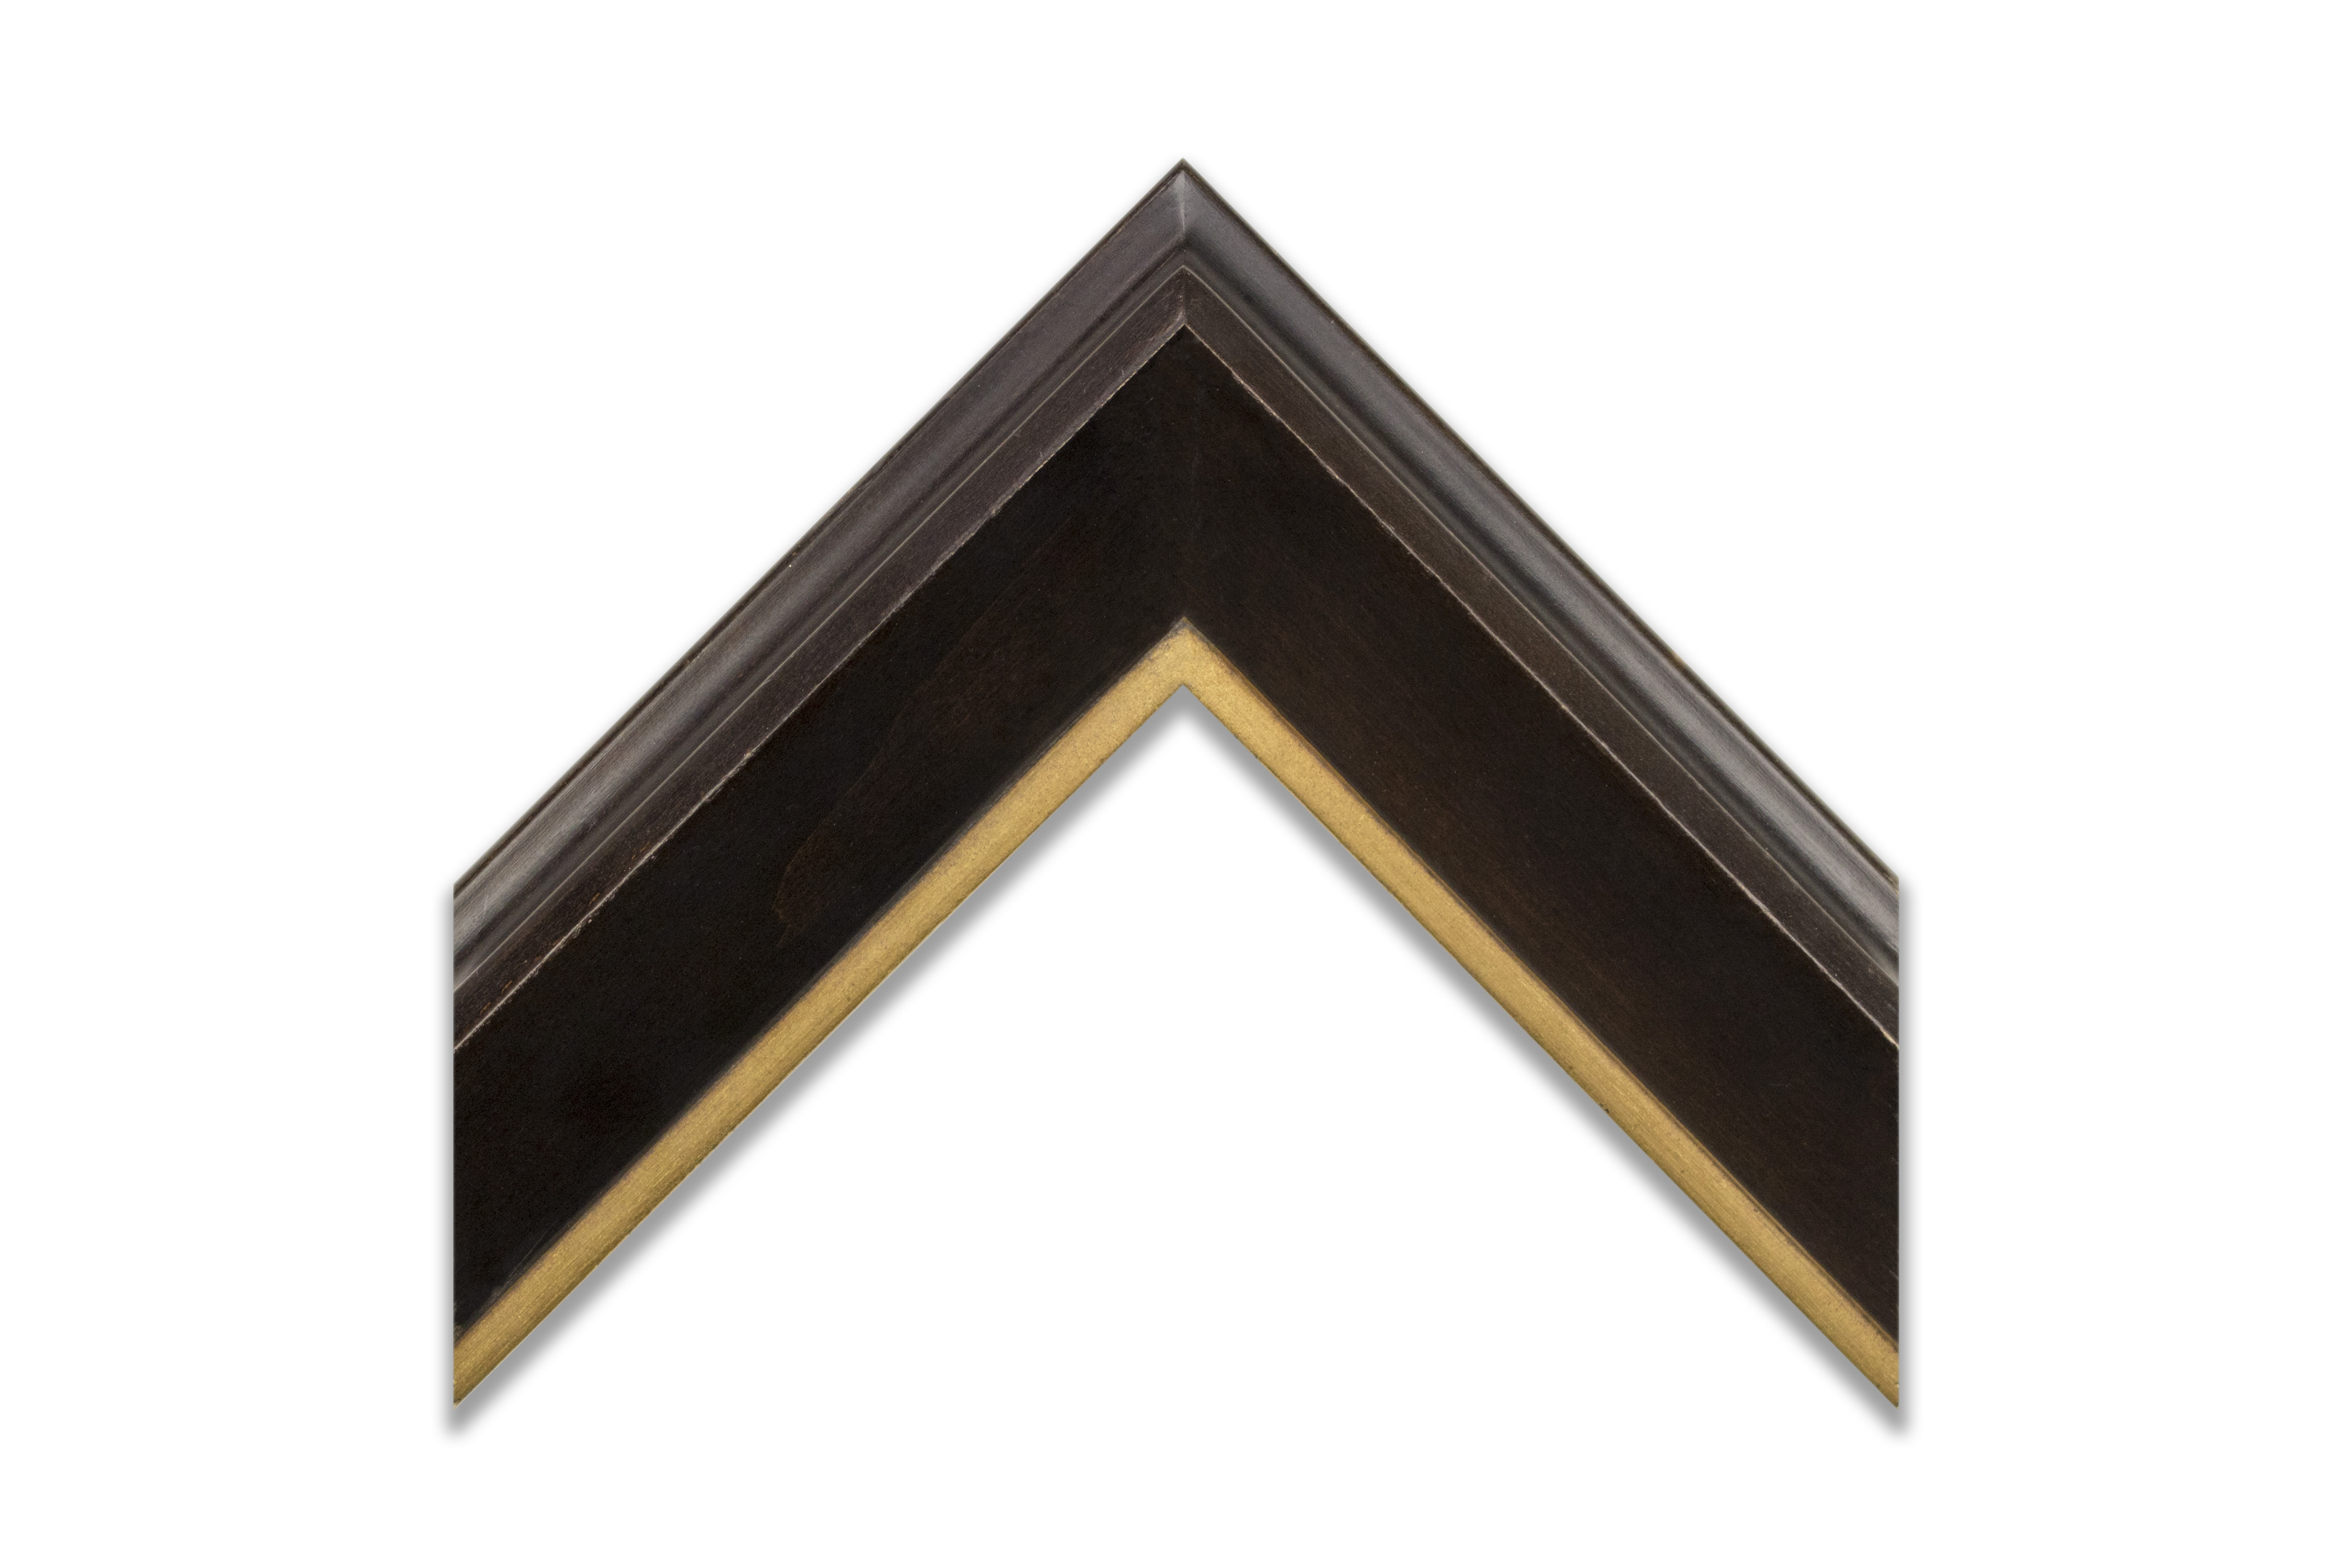 wholesale picture framing